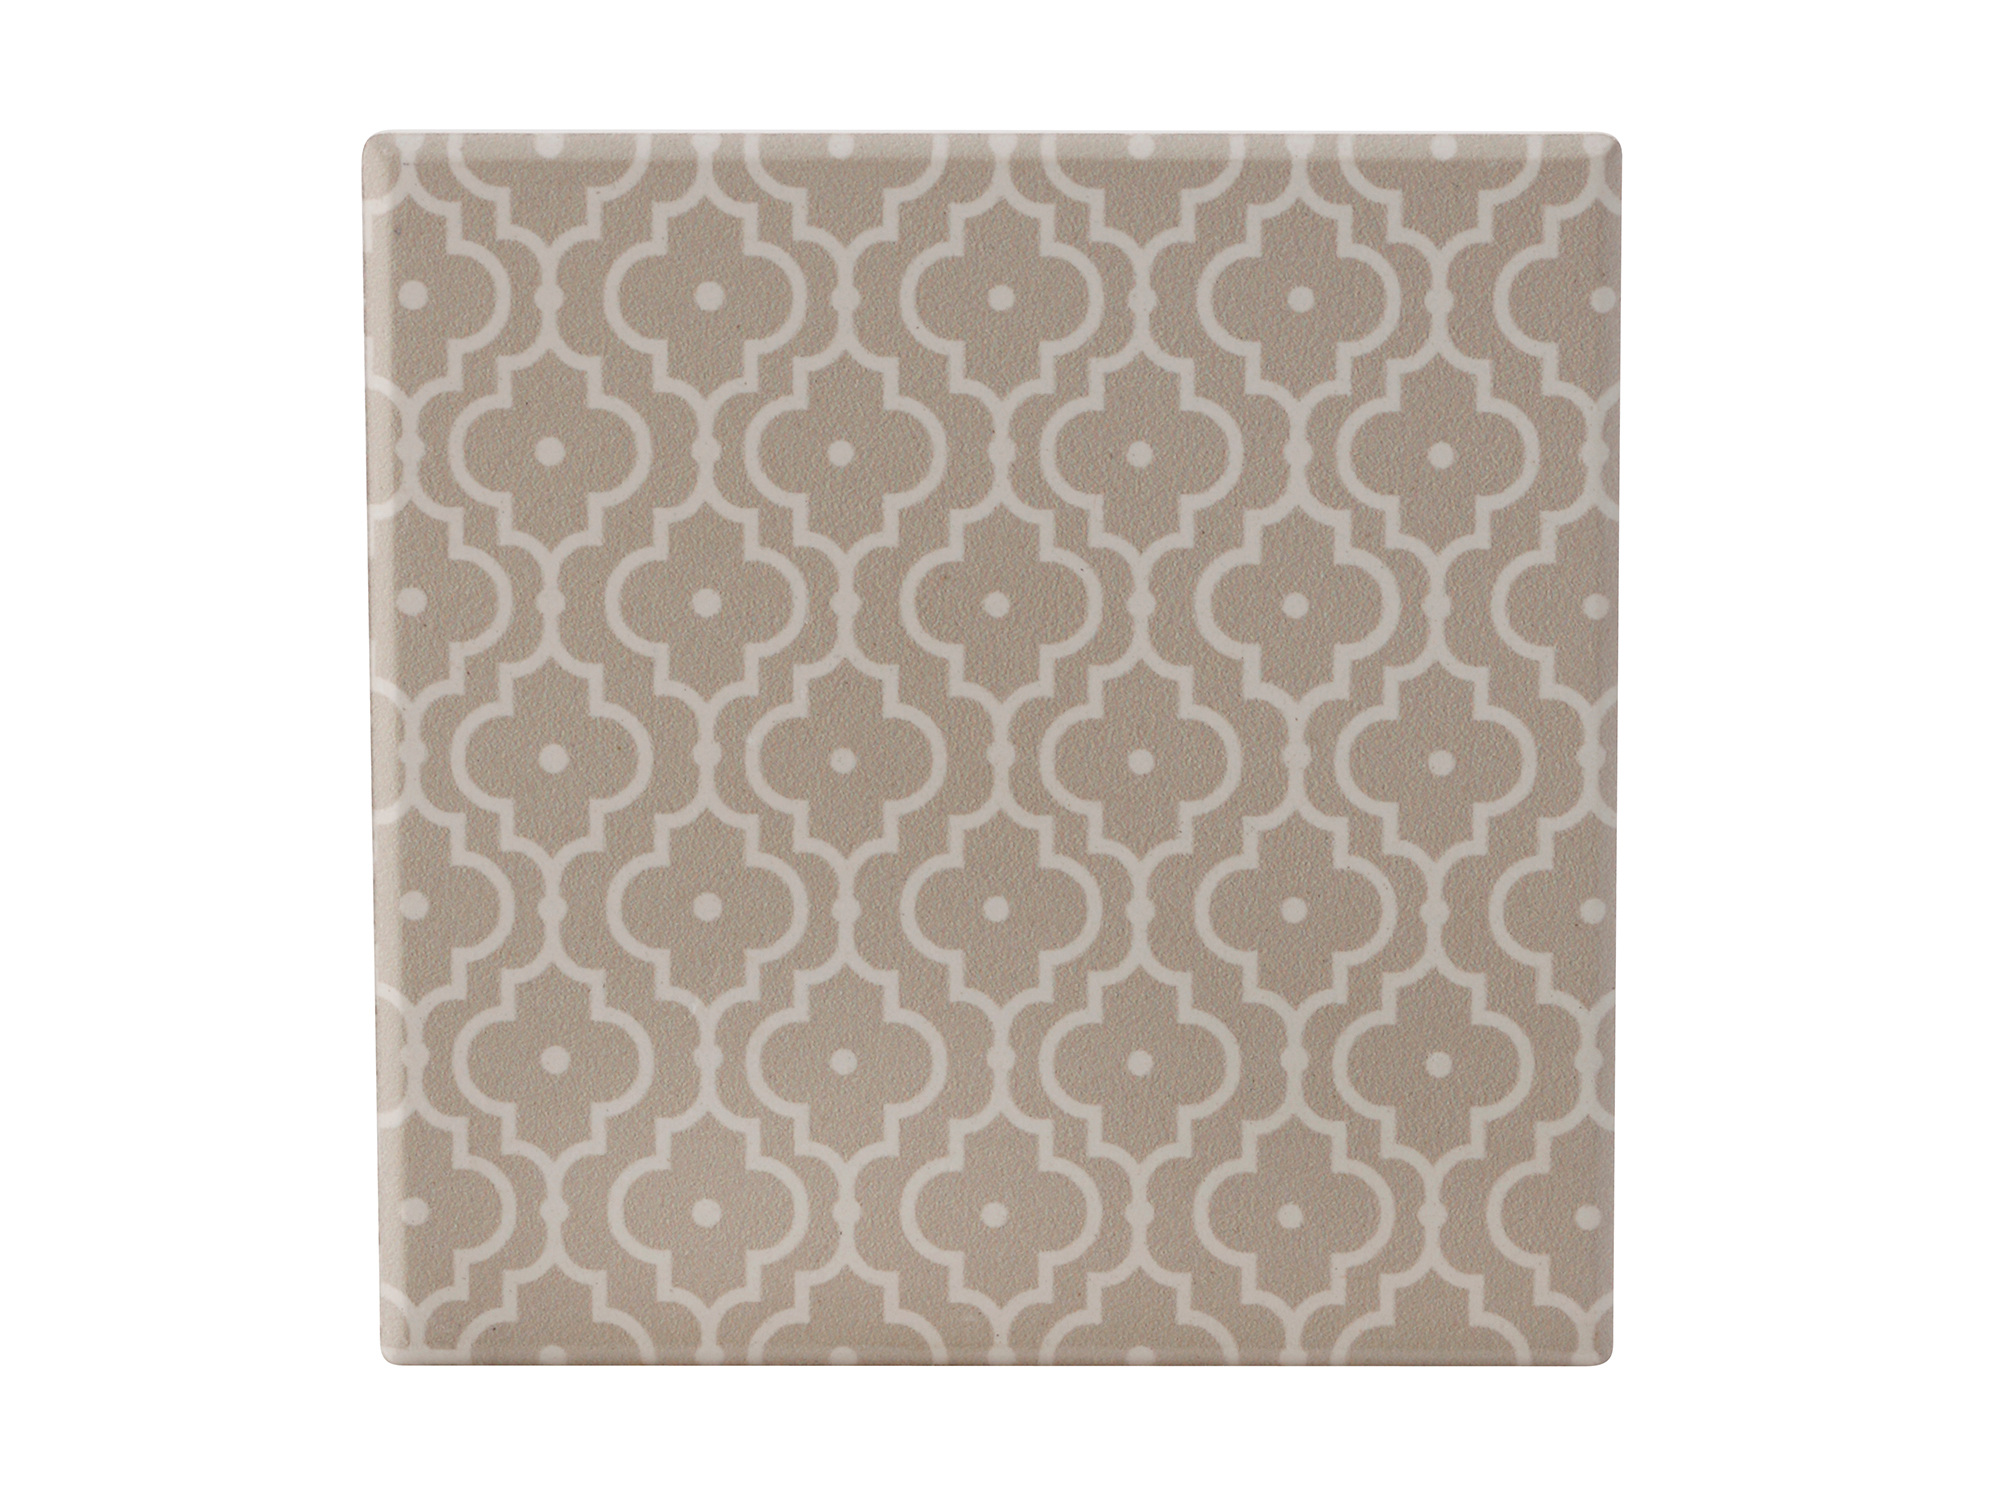 Maxwell & Williams Medina Kasbah 9Cm Ceramic Square Tile Coaster